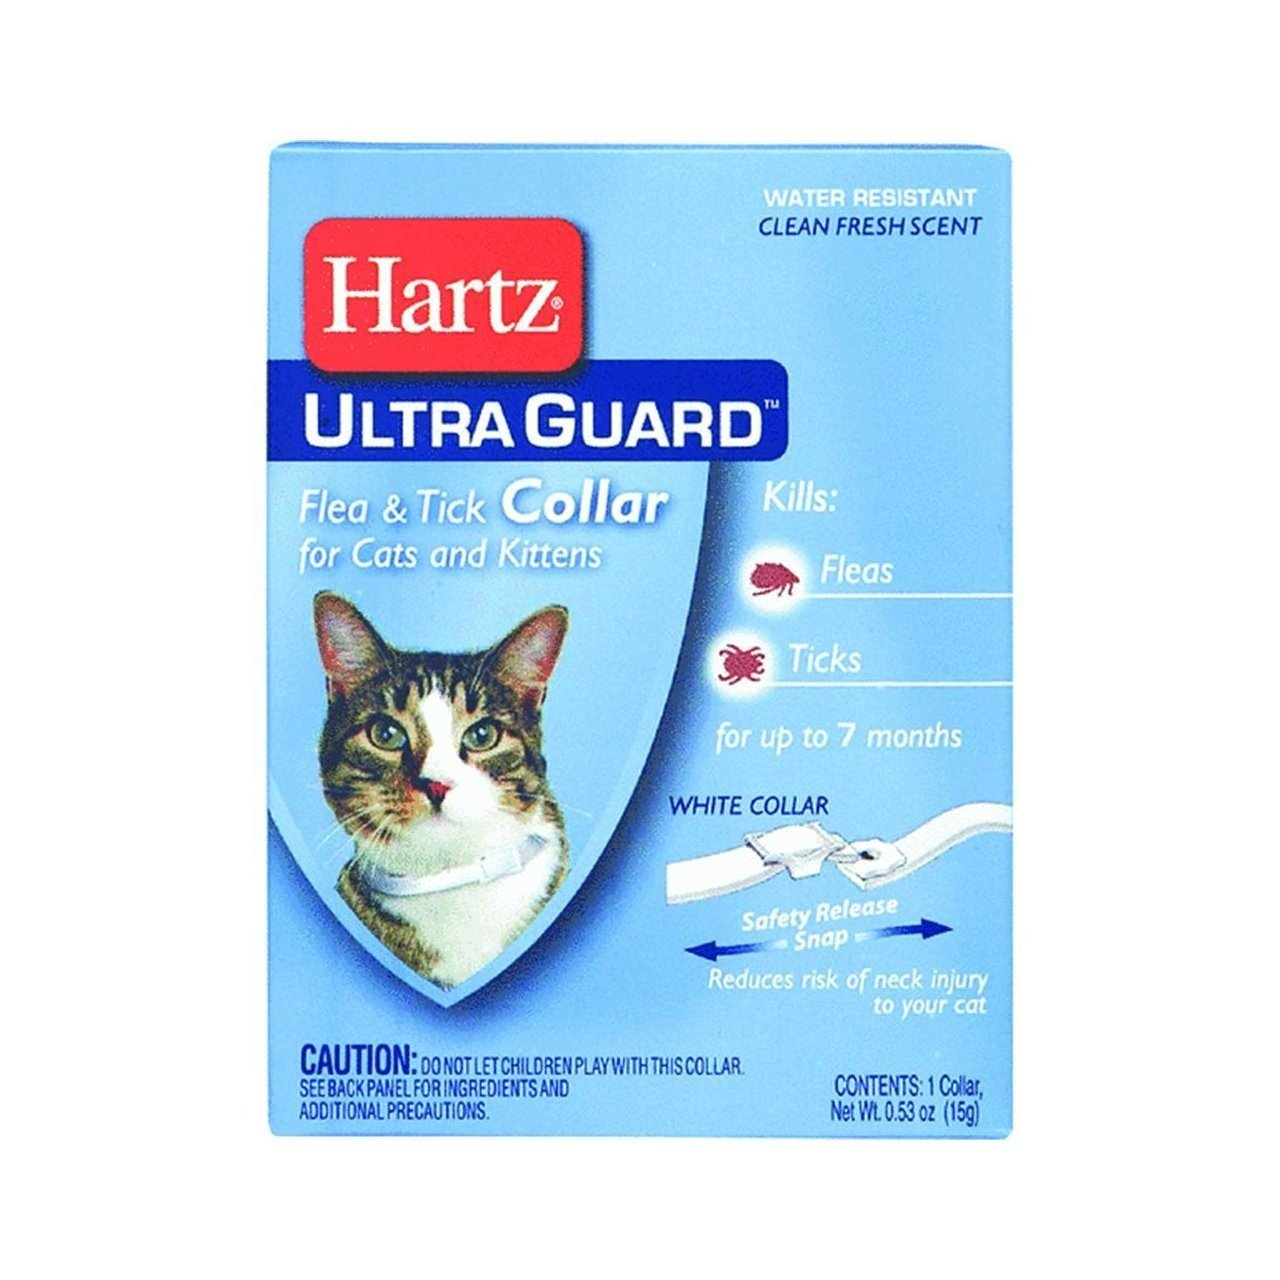 HARTZ Ultra Guard Flea & Tick Collar for Cats and Kittens (White Color)